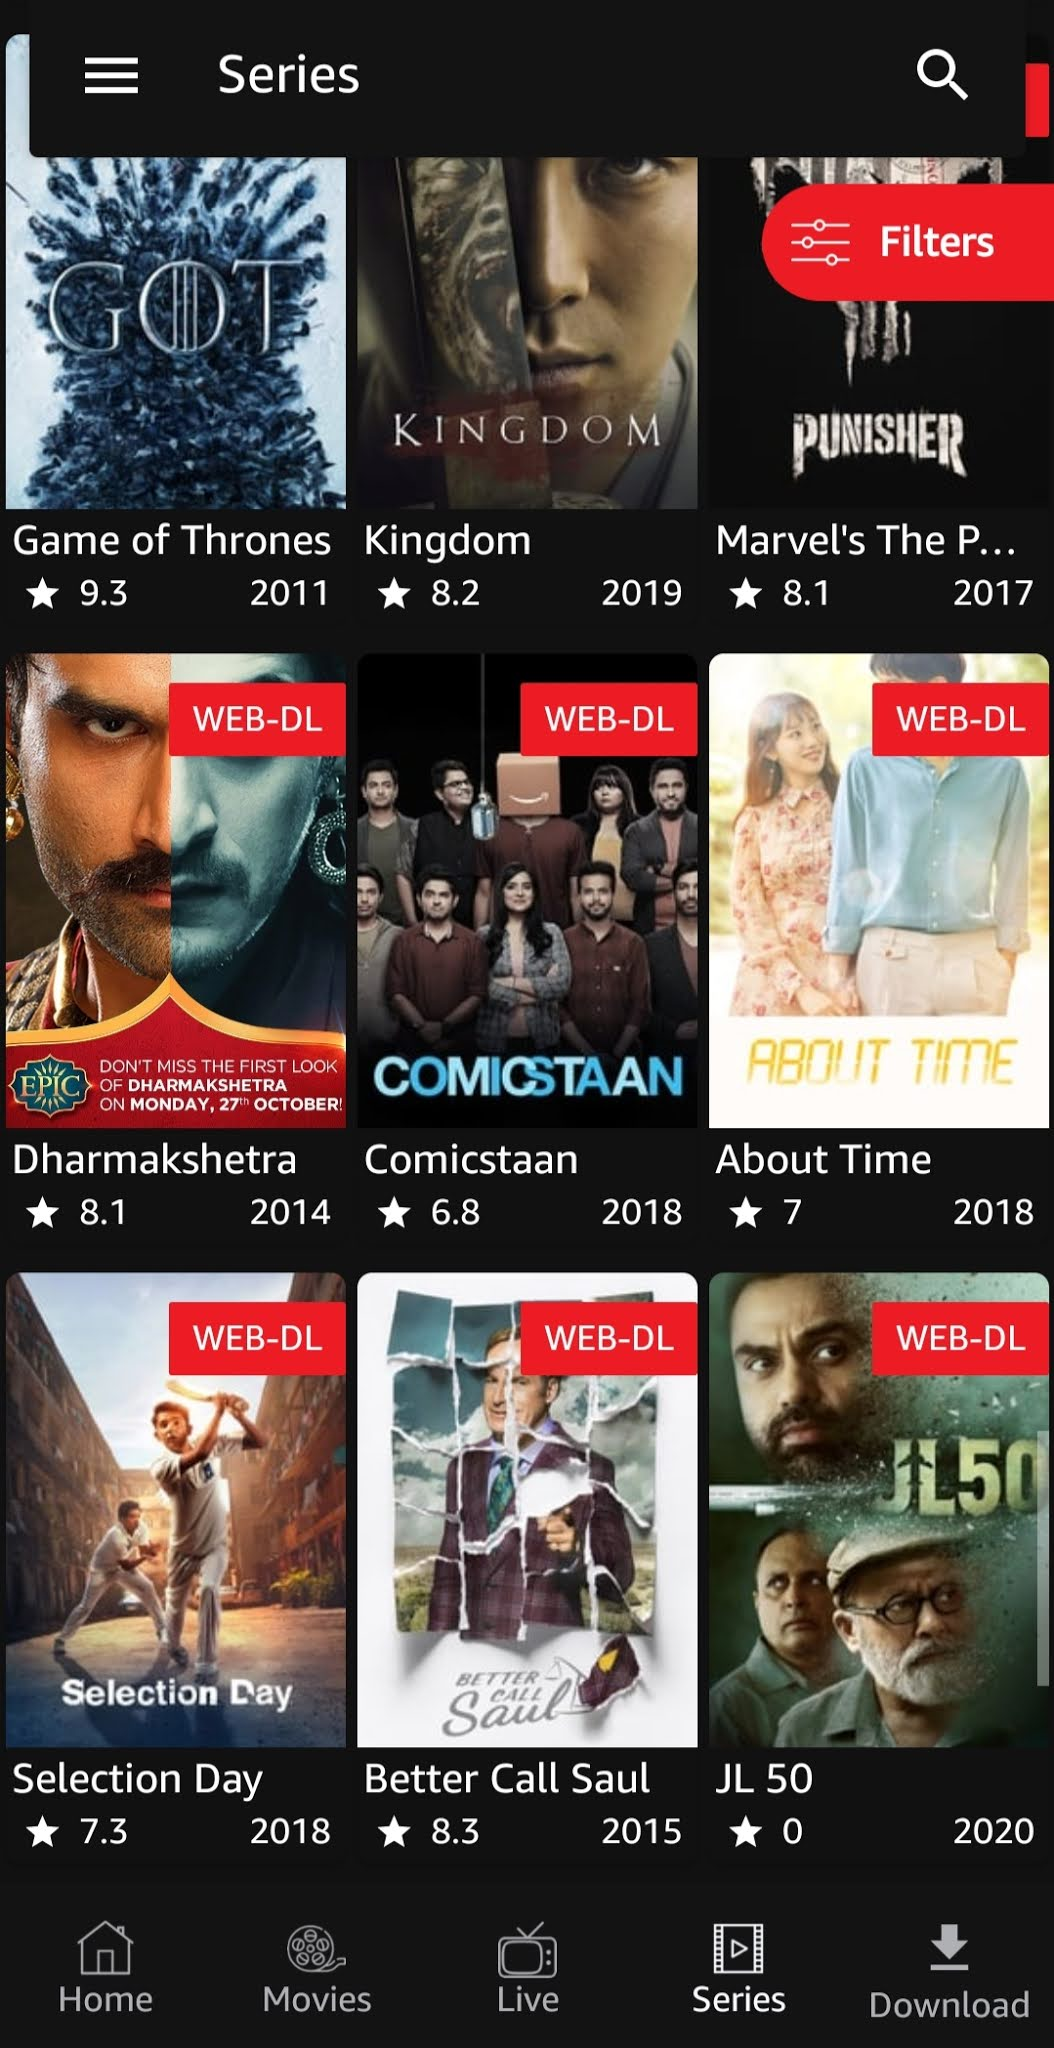 BonsaiHD App - How To Download, Details, Review, Screenshots, Subscription Free!